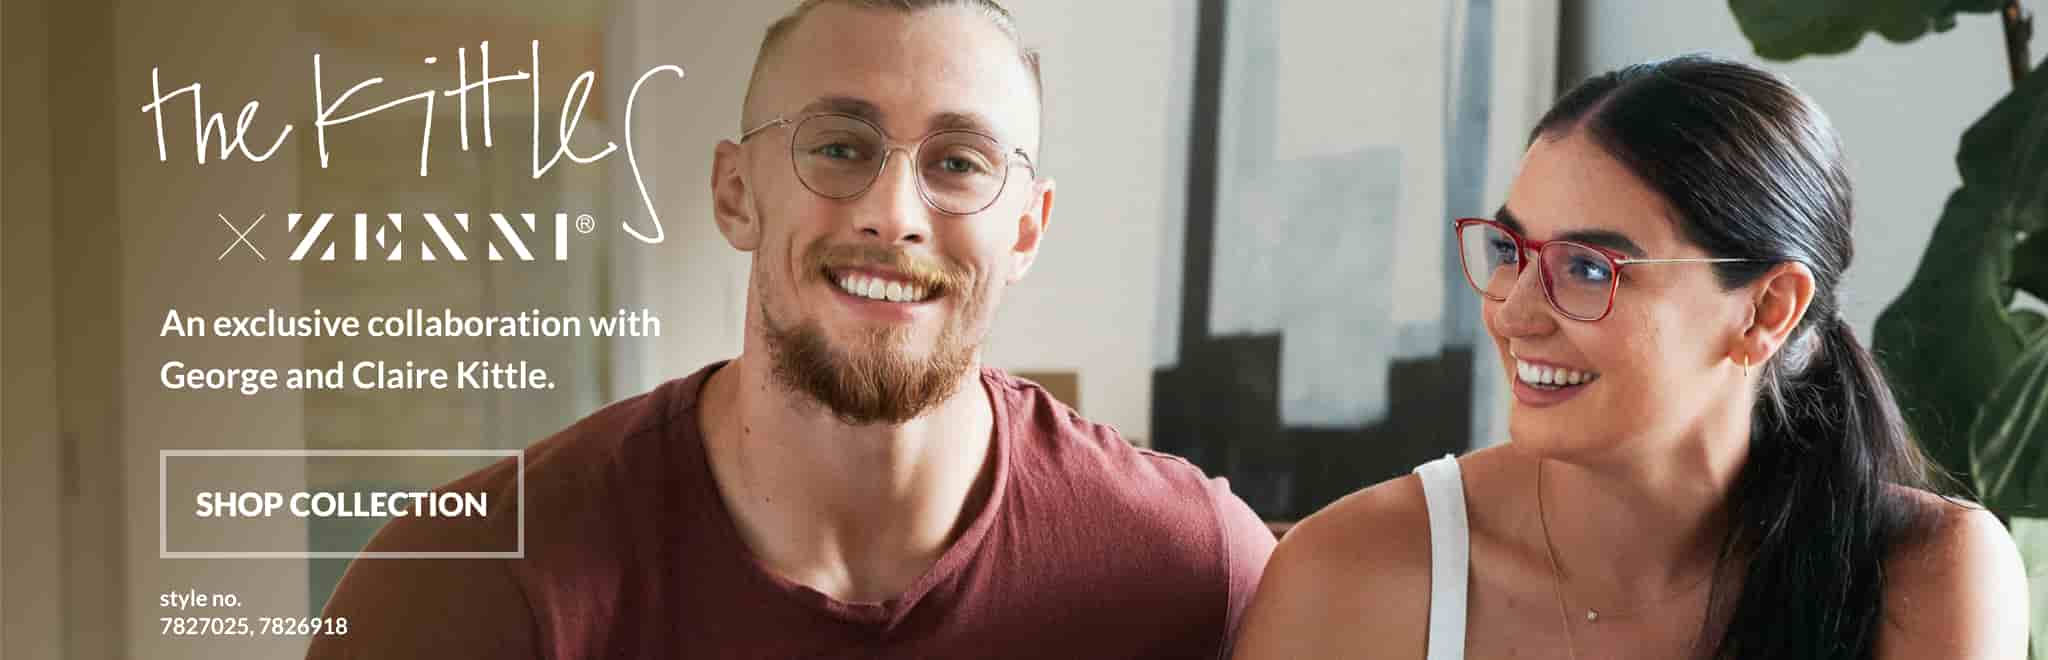 The Kittles and Zenni. Meet the kittles. Image of 49er George Kittle and his wife Claire, wearing zenni stone cold round glasses #7827025, and Zenni thunderbirds square glasses #7826918 respectively, inside their living room.